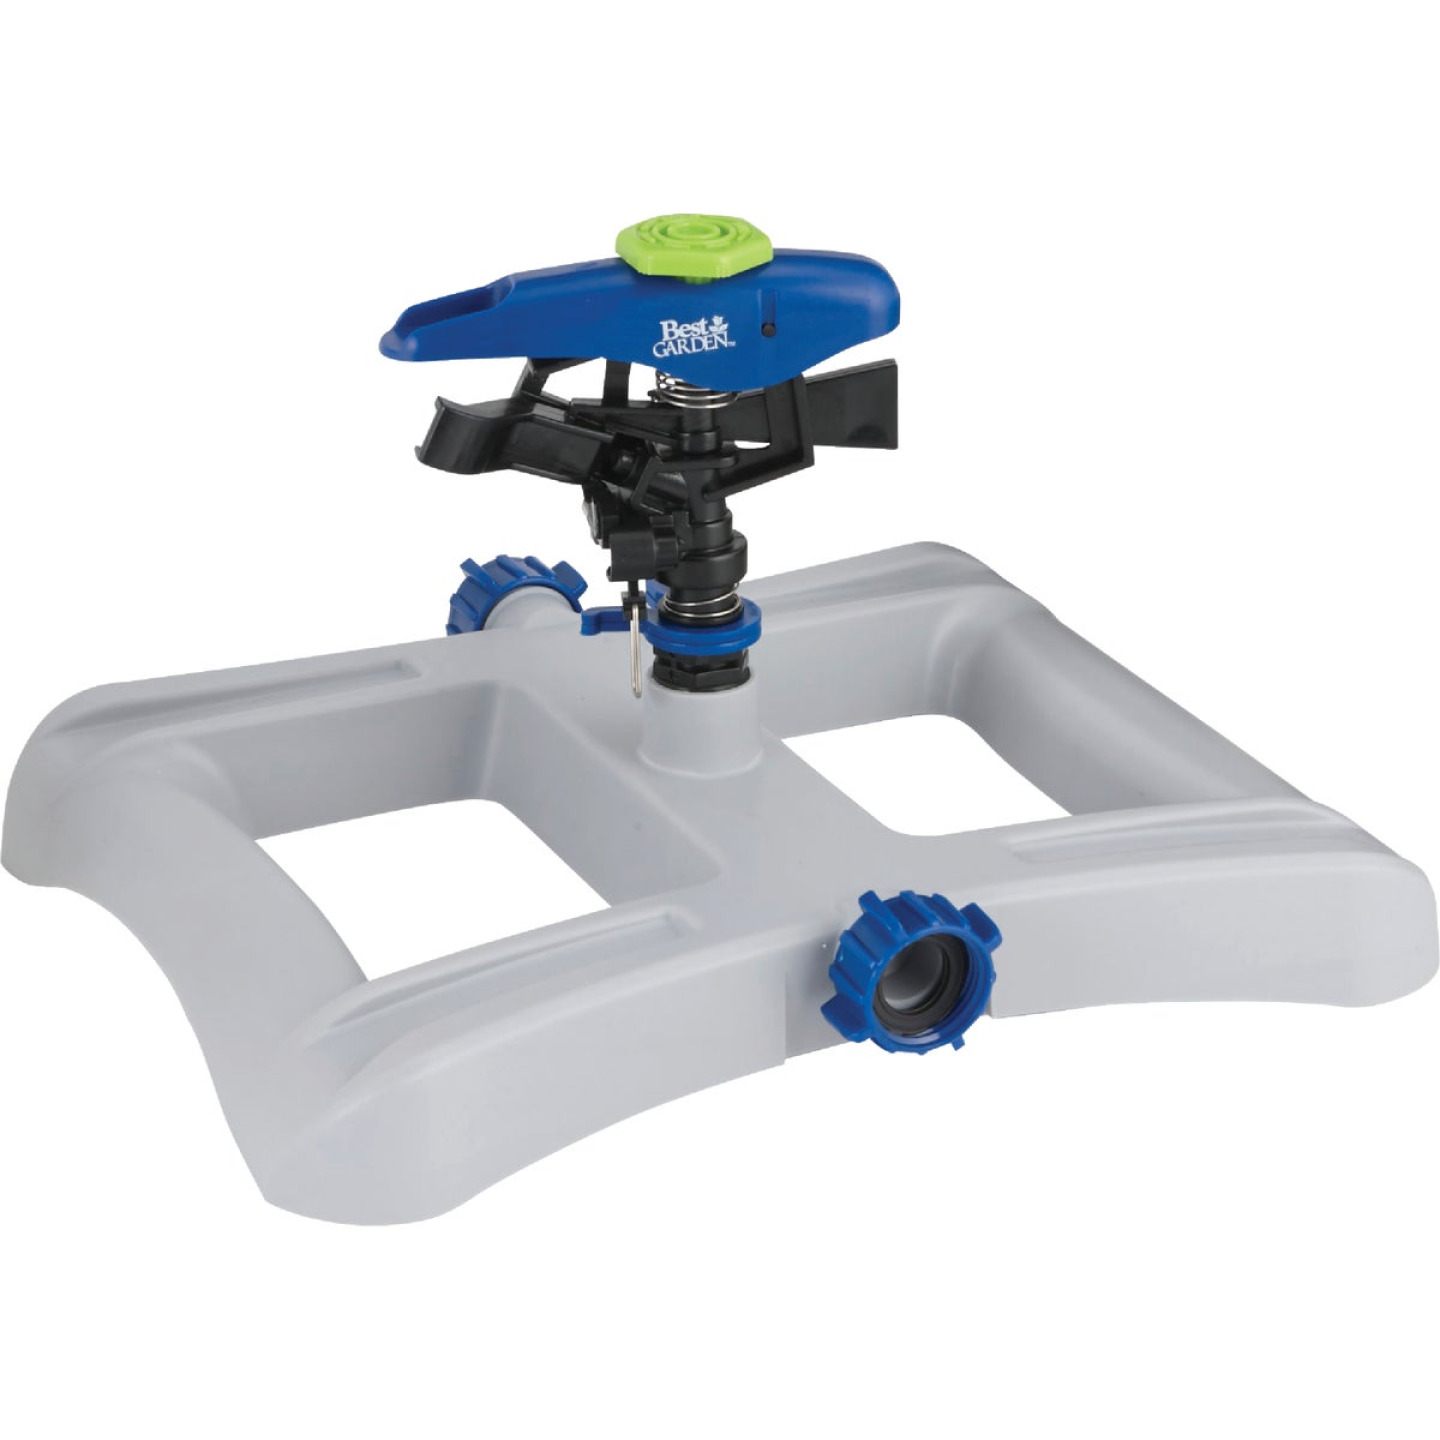 Best Garden Poly 5800 Sq. Ft. Sled Impulse Sprinkler Image 1